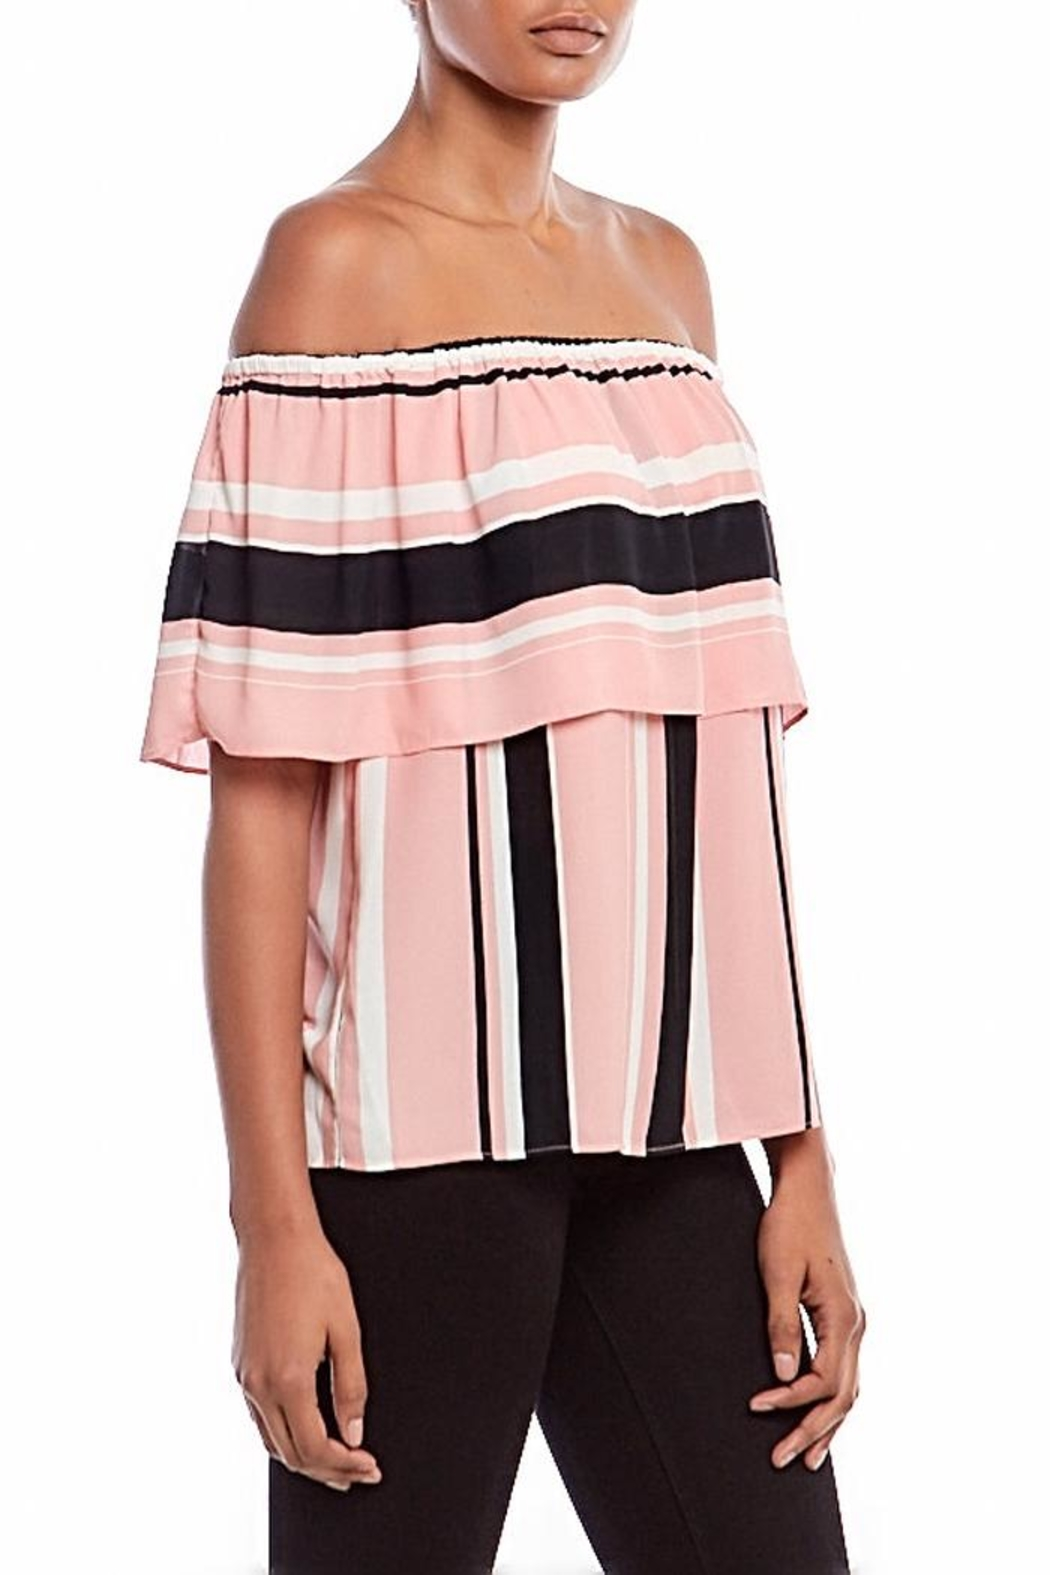 Asher by Fab'rik Wesley Top Pink - Side Cropped Image